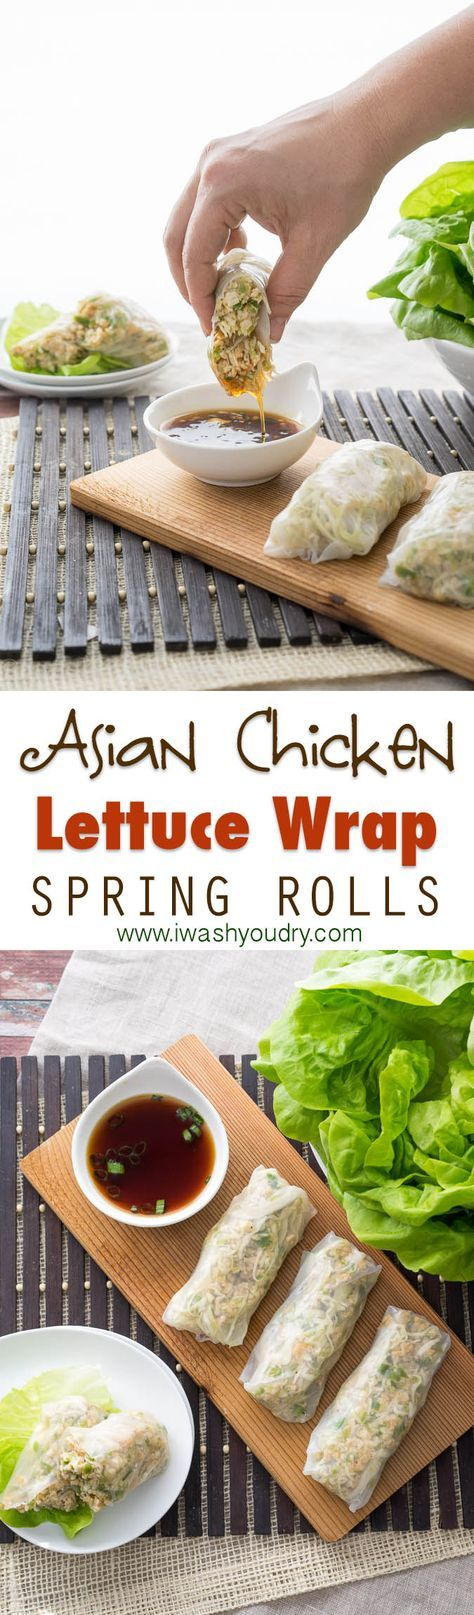 Fresh and easy! Asian Chicken Lettuce Wraps in a Spring Roll wrapper!